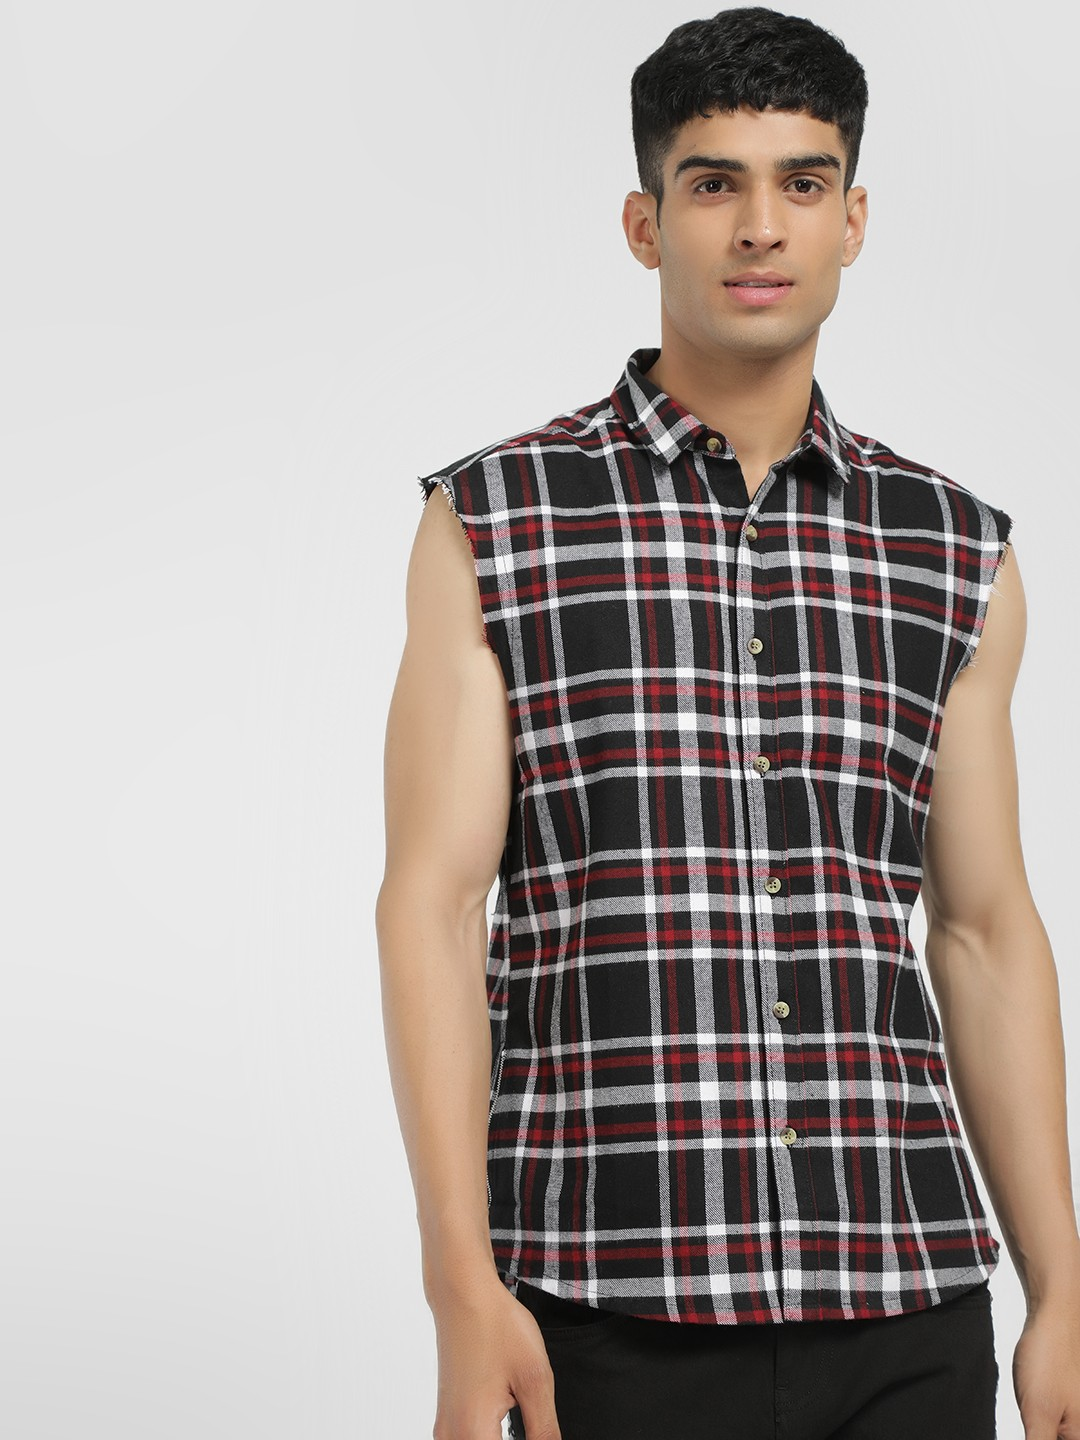 TRUE RUG Multi Back Print Multi-Check Sleeveless Shirt 1